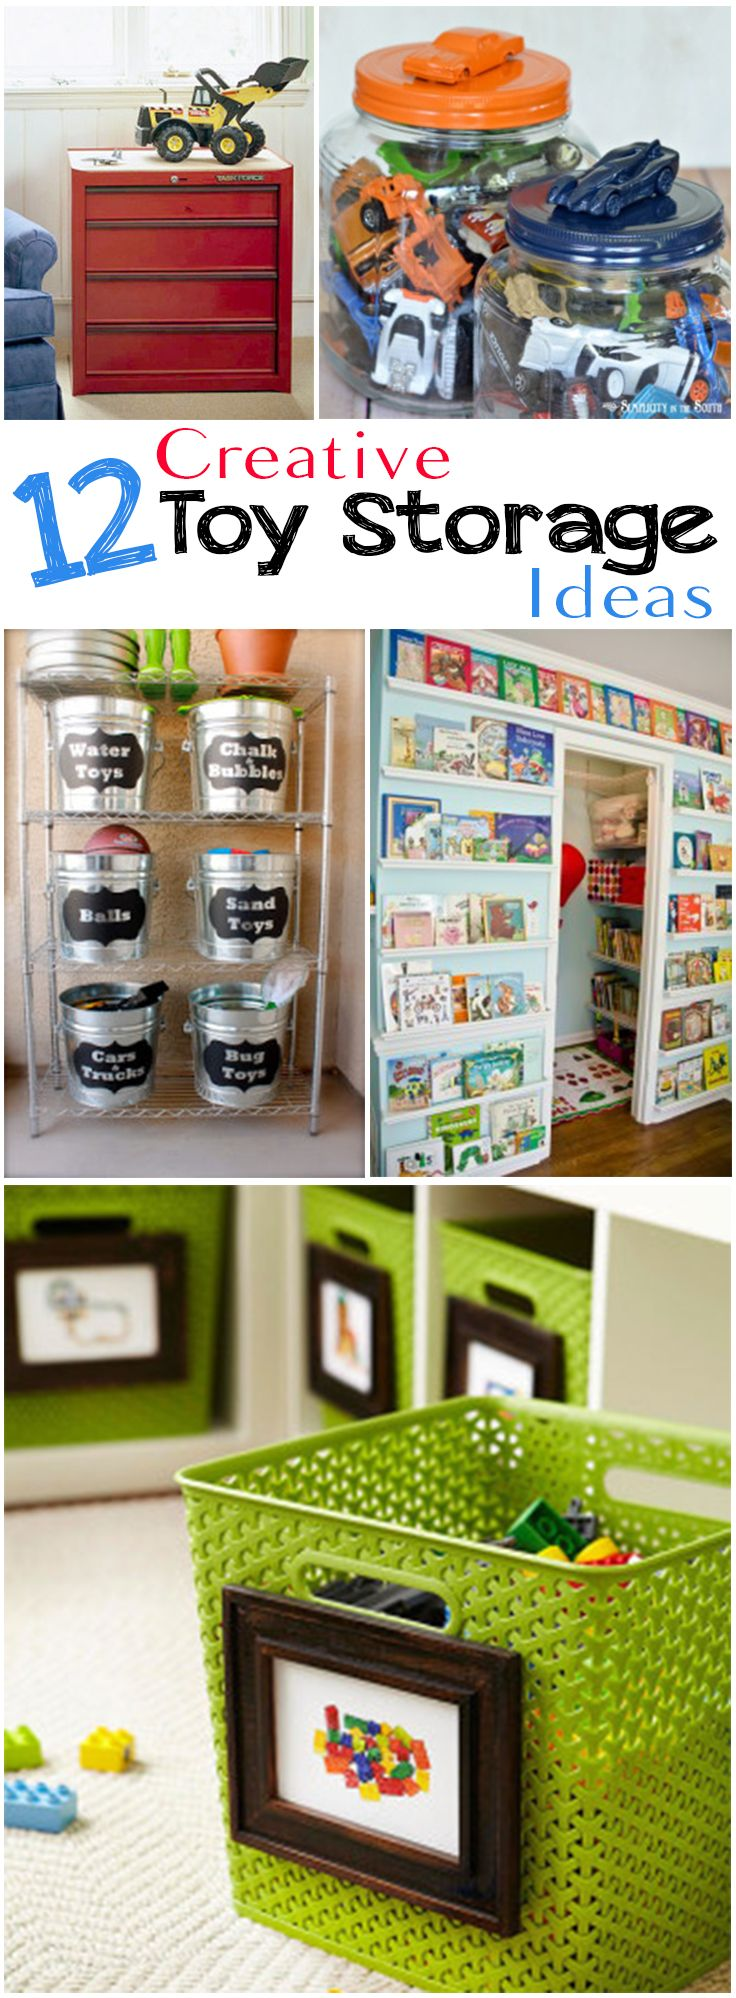 440 Best Kids Playroom Ideas Images On Pinterest Child